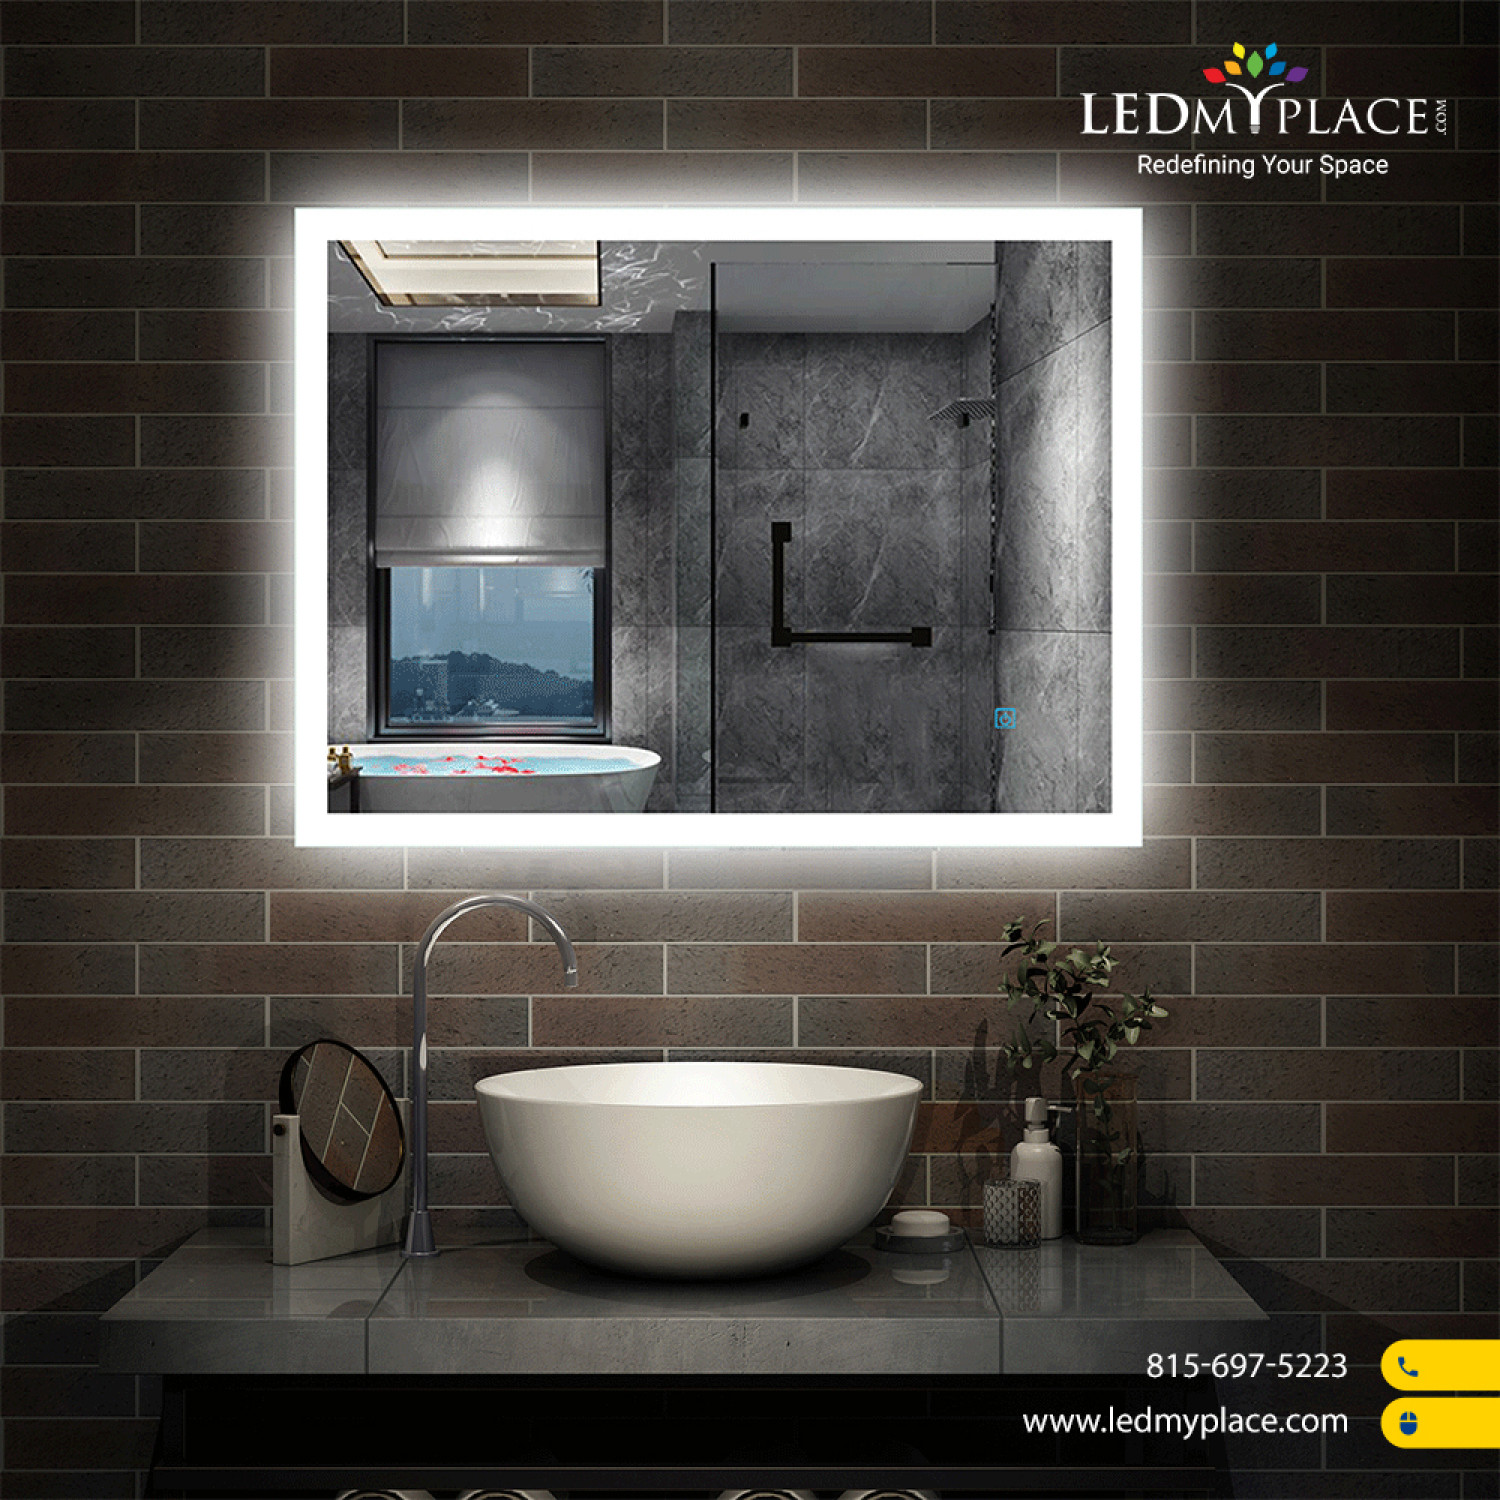 LED Vanity Mirrors With Defogger Features, Don't Miss Them Infographic